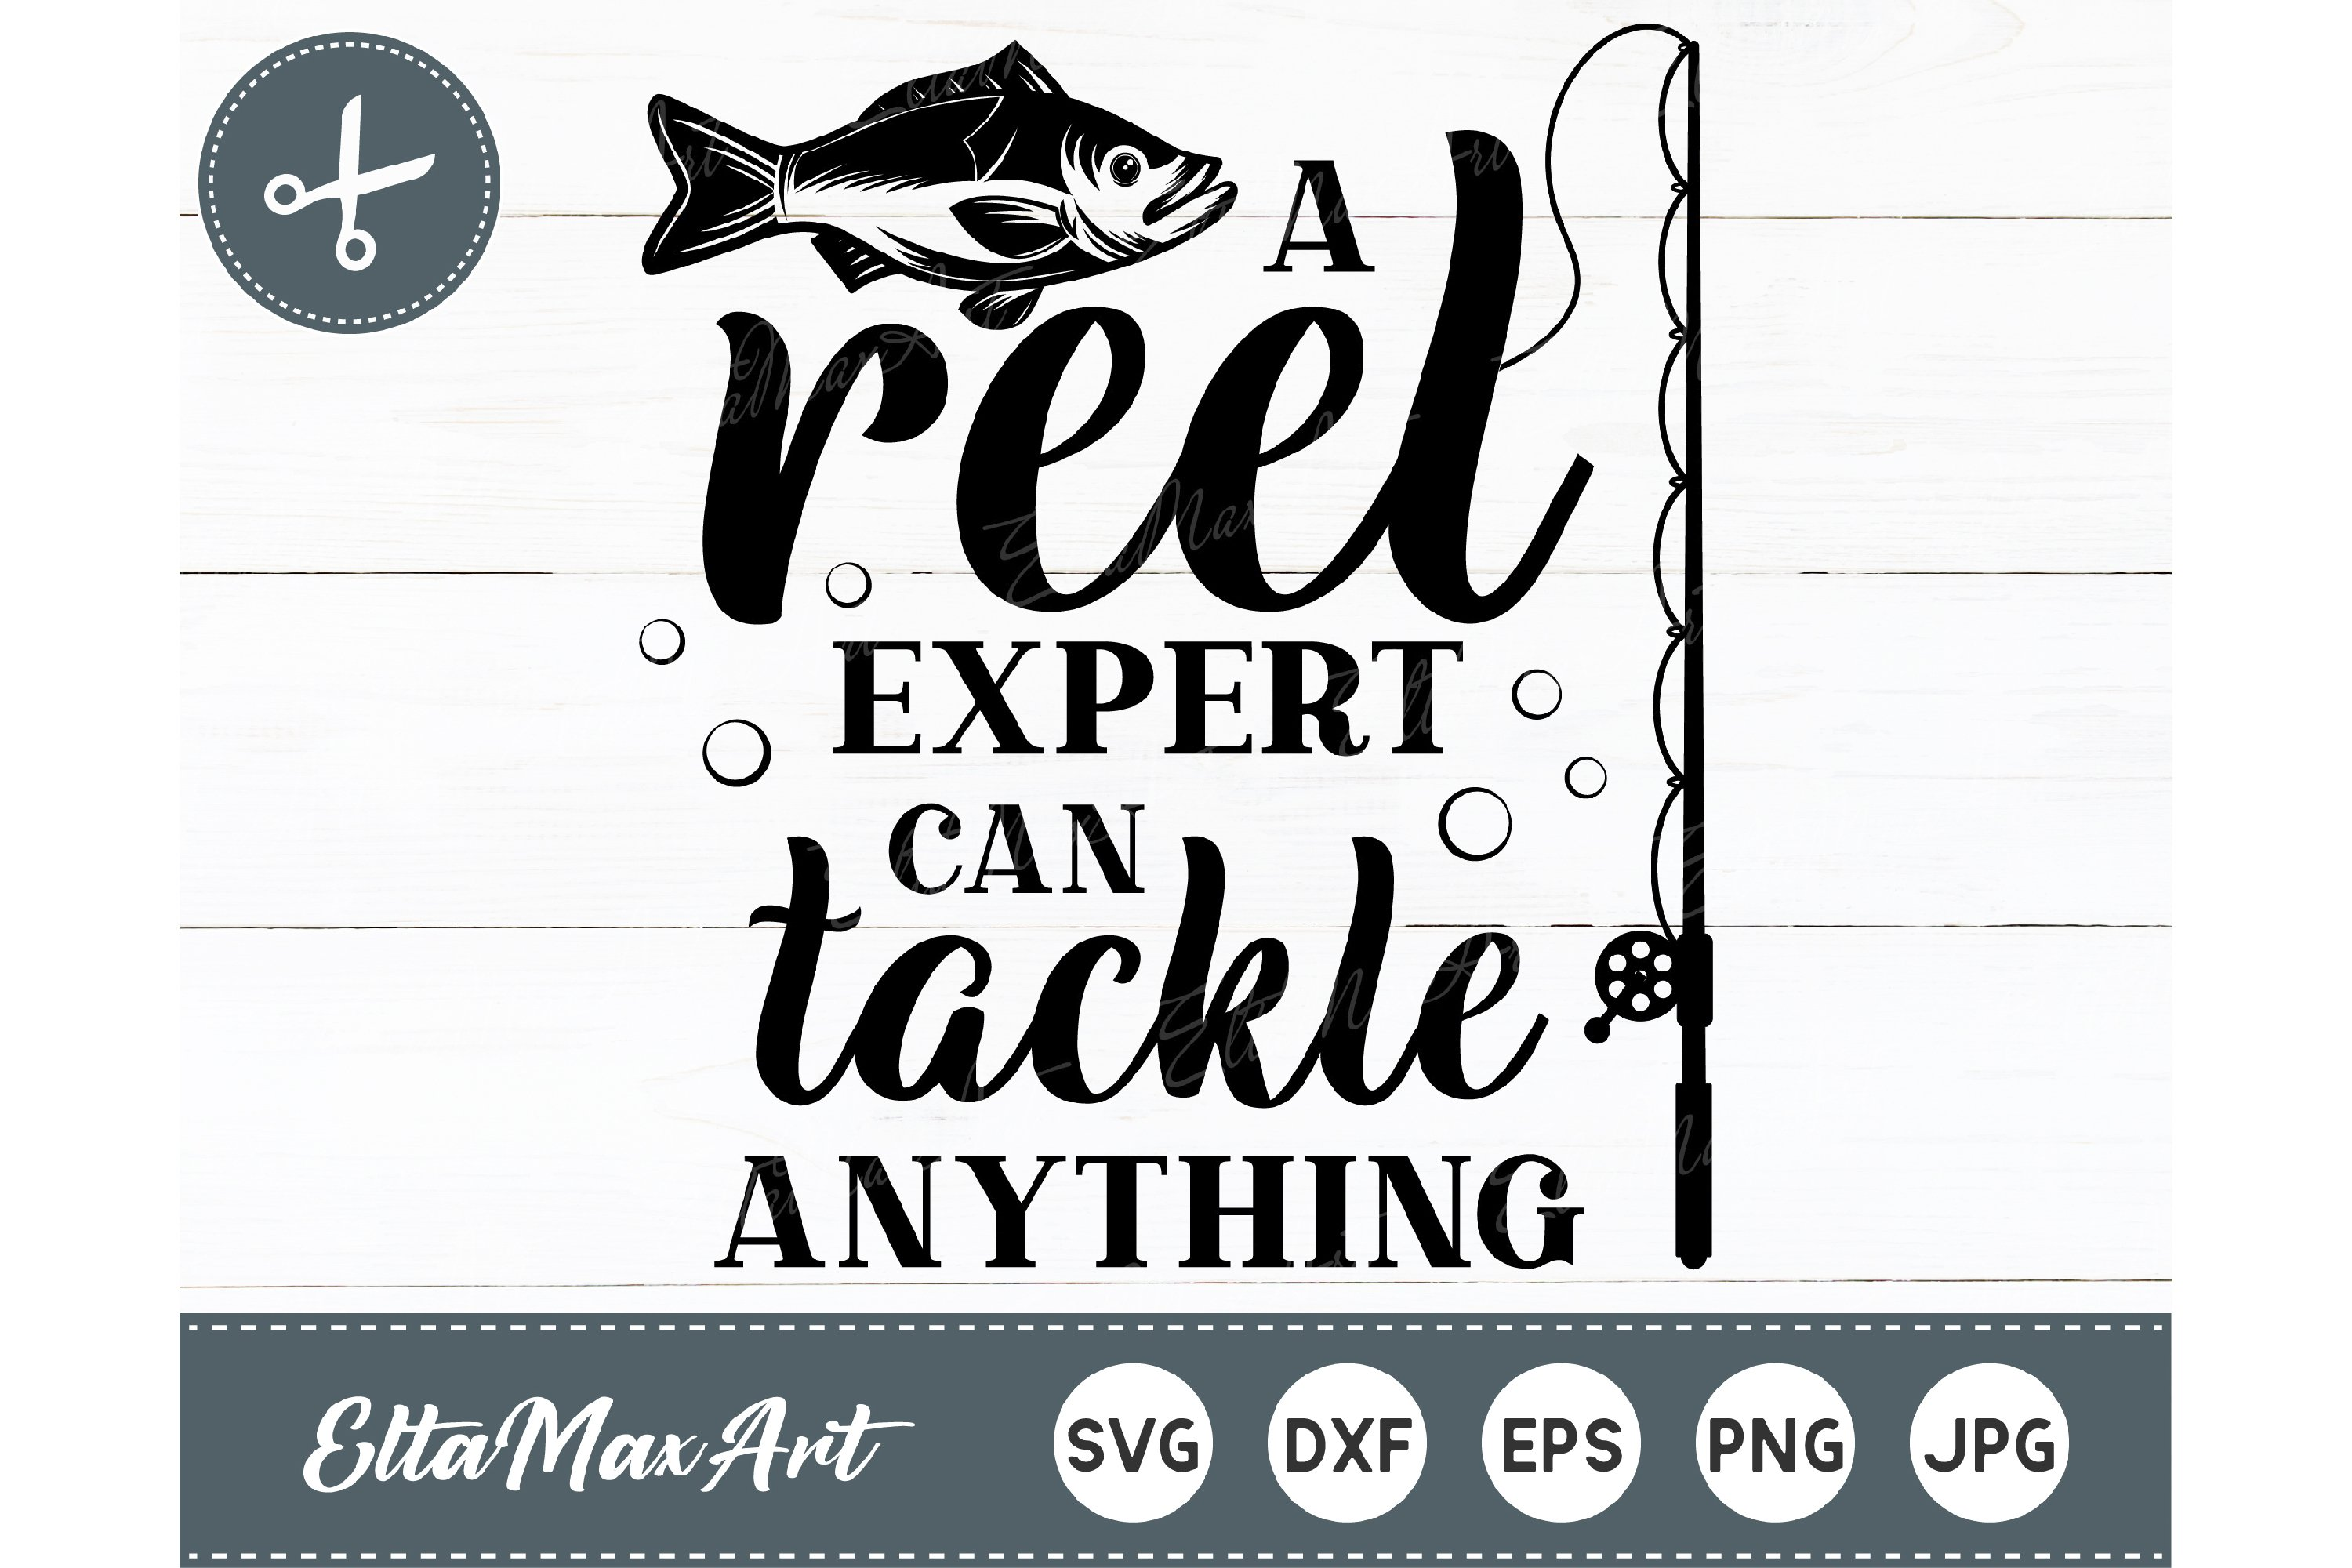 Download A Reel Expert Can Tackle Everything Svg Reel Svg Fishing Quote Svg Reel Expert Svg Fishing Saying Fish Hook Svg Fishing Cut File Materials Craft Supplies Tools Puzzles Design Media De